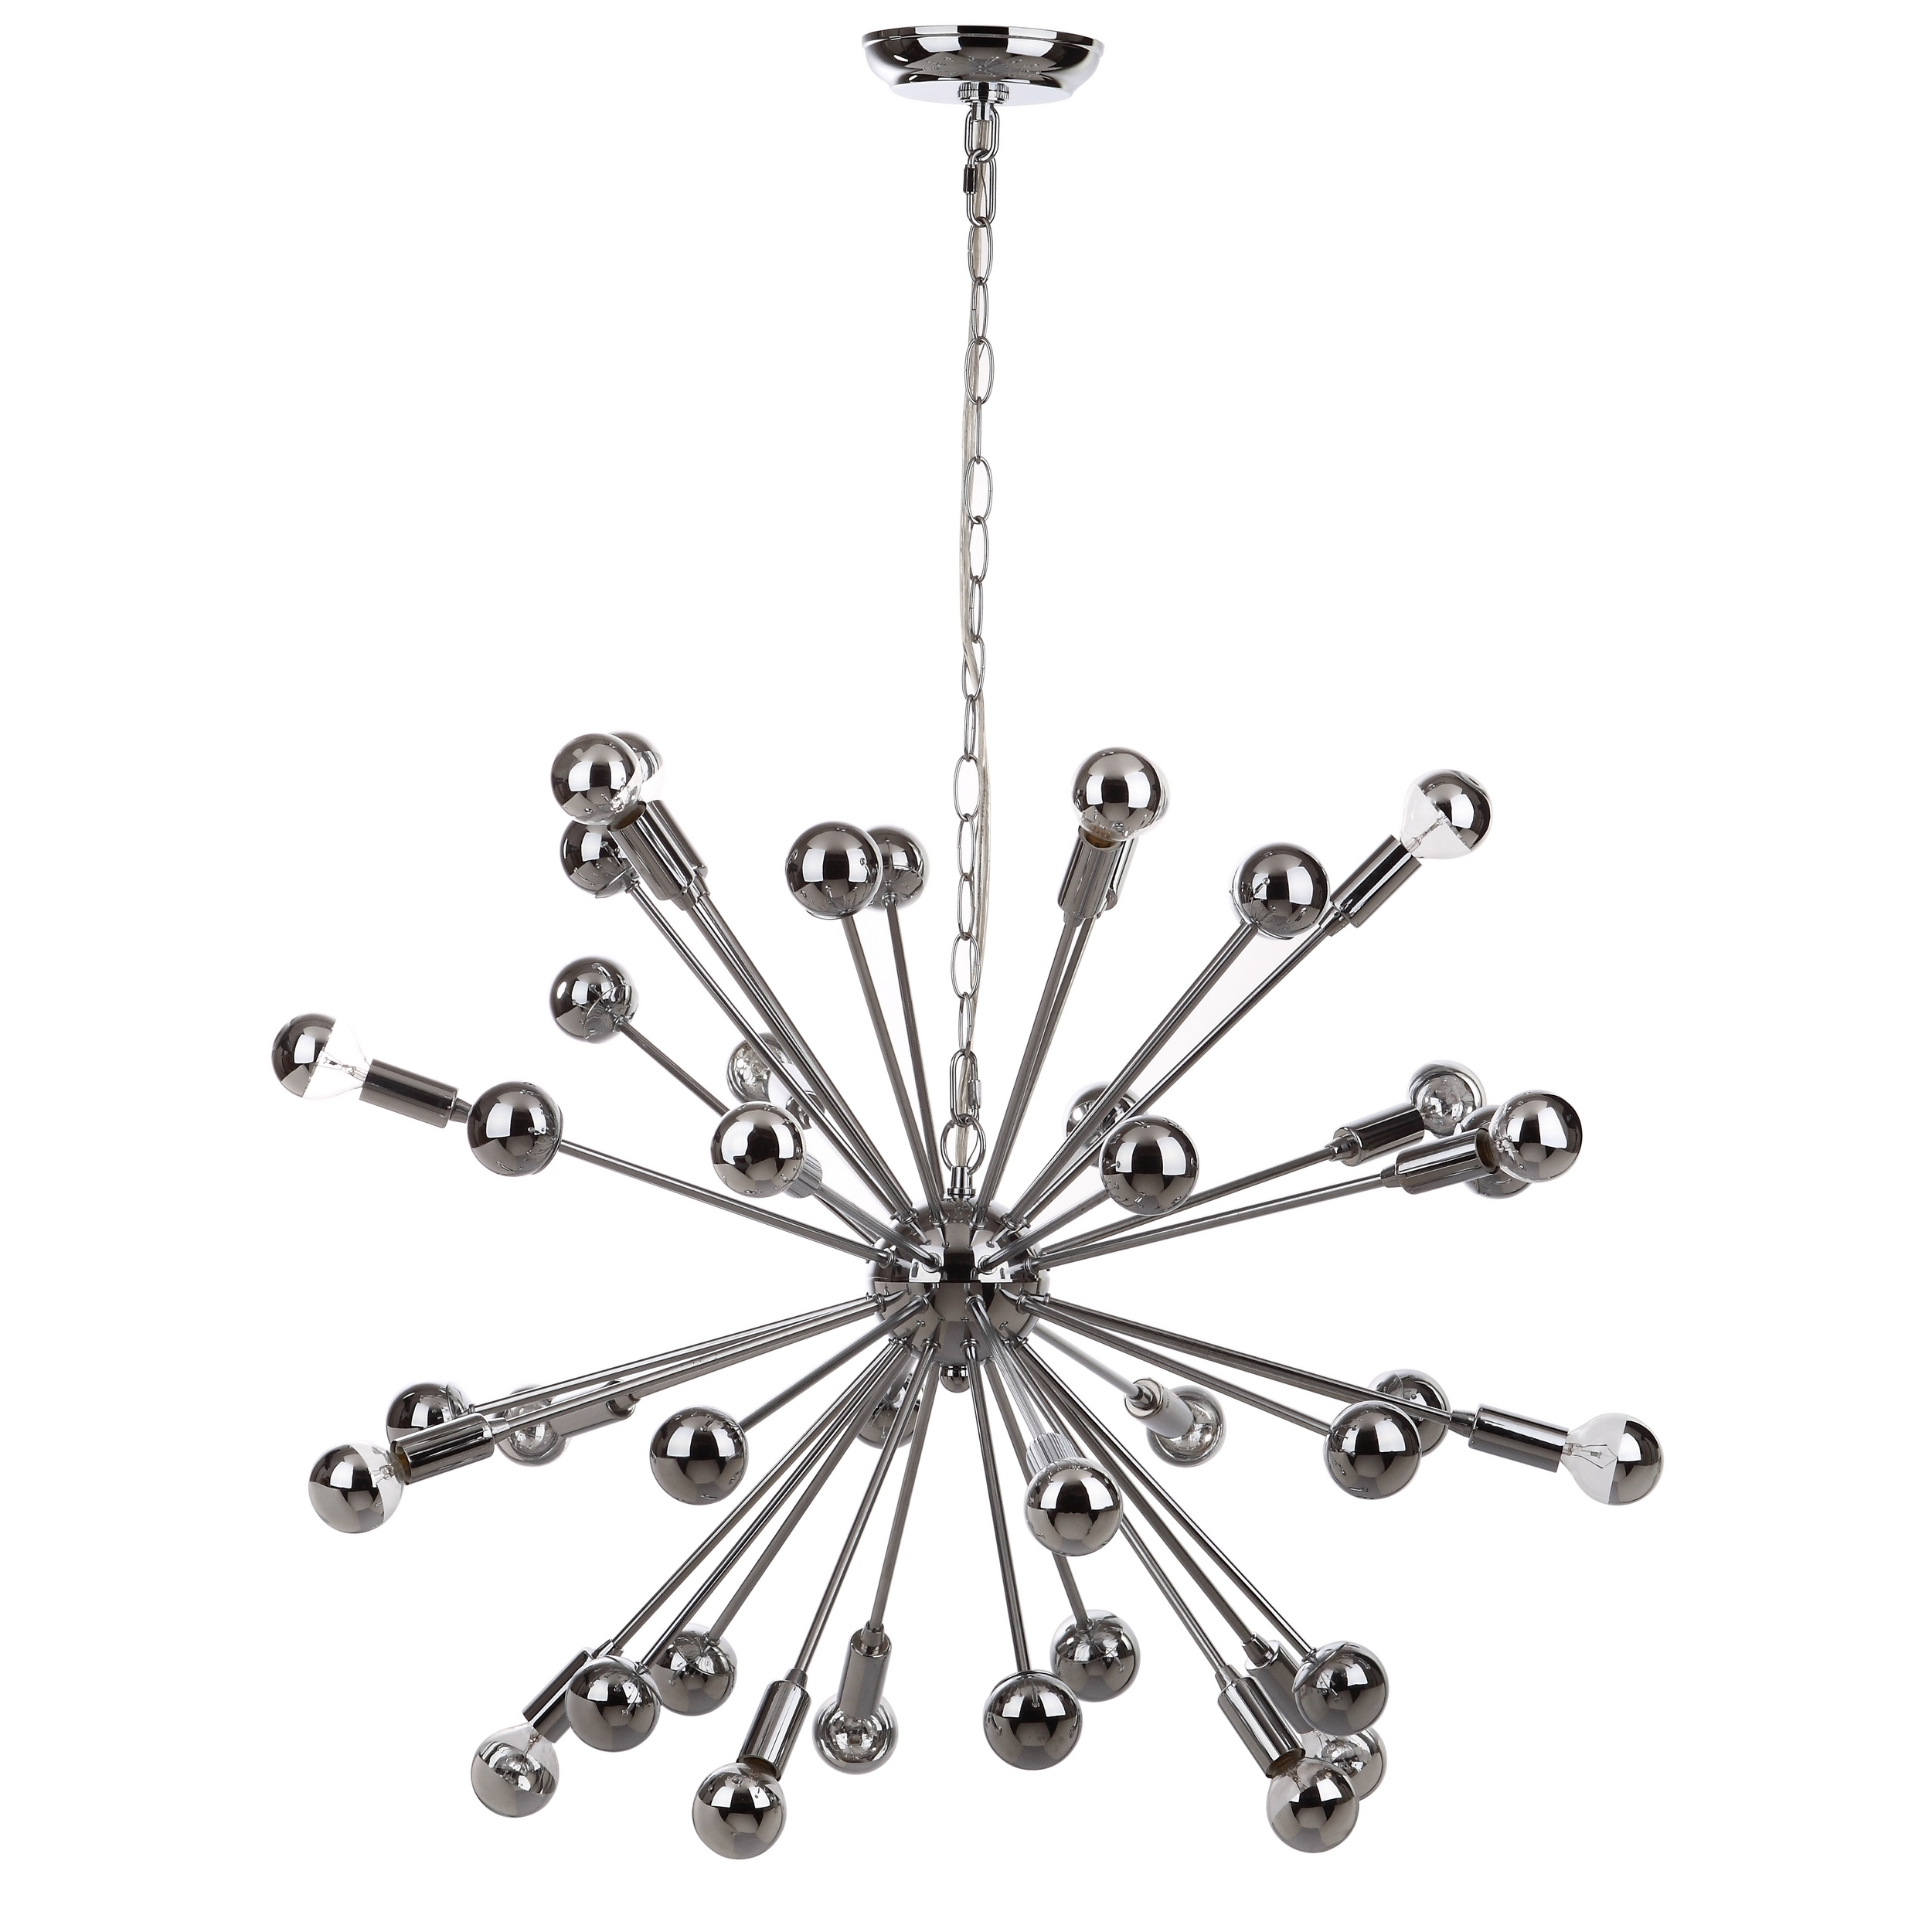 2500x2500 Safavieh Lighting 31 Inch Starburst Sputnik 20 Light Chrome